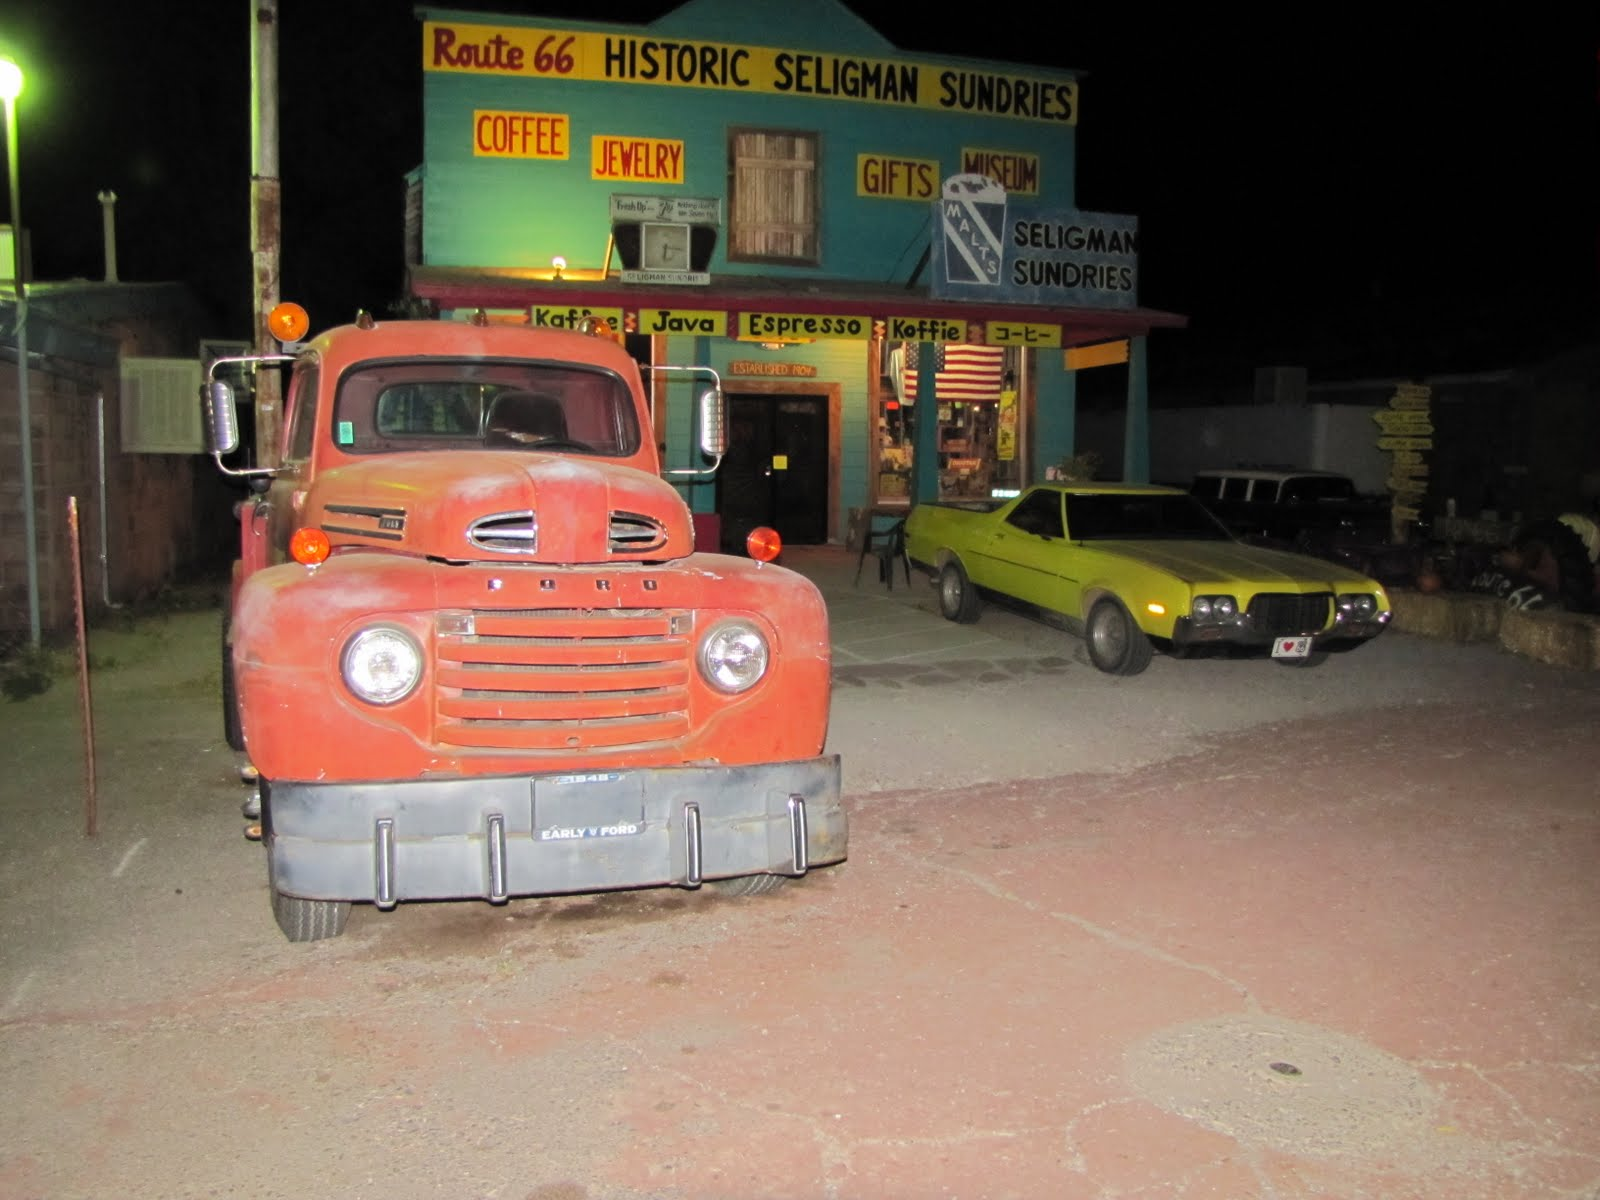 Route 66, Arizona, 1948 Ford F6 Tow Truck, 1972 Ford Ranchero